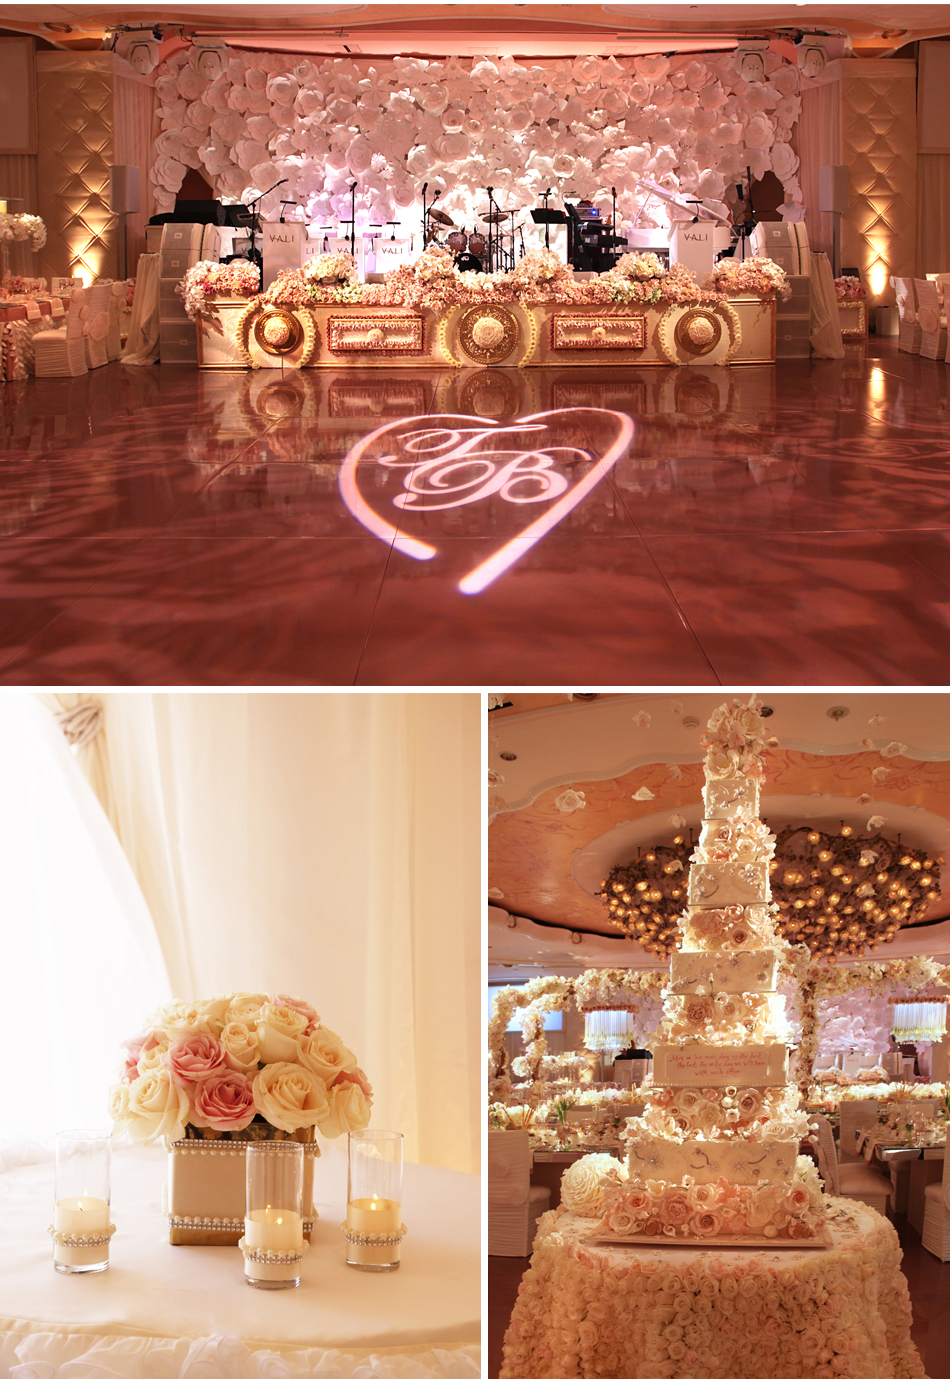 internationaleventcompany.com | International Event Company Los Angeles Wedding Planner and Designer | Weddings at The Four Seasons and Beverly Hills Hotel | Luxury Event Planners in Southern California _ (3).jpg